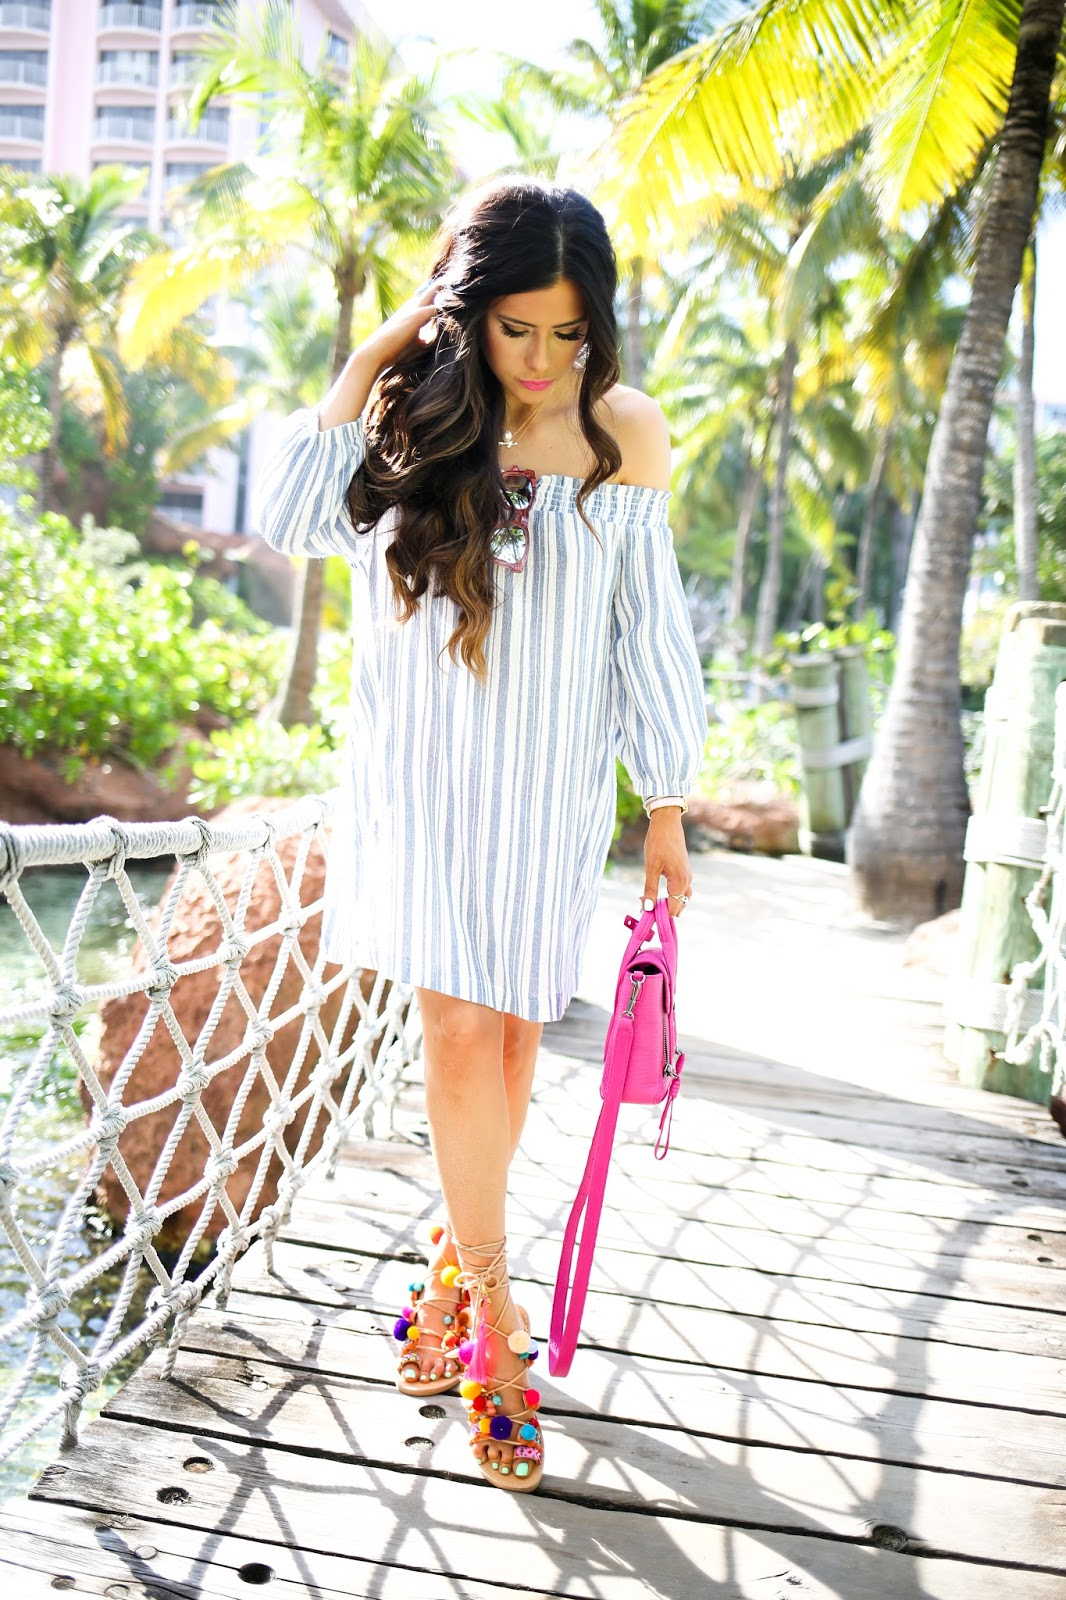 pink mini phillip lim, fuchsia phillip lim mini handbag, lush off the shoulder dress nordstrom, elina linardaski penny lane sandals, gladiator sandals with charms and poms, sandals with poms that tie around ankle, atlantis bahamas fashion blog, emily gemma blog, the sweetest thing blog, how to style a pink handbag during winter, what to do in atlantis bahamas, where to stay in the bahamas, what to wear on spring break, outfit ideas for beach trips, odysssey turquoise ring, pink cross body handbag, nordstrom affordable dresses for spring, brunette bayalage hair, bellami balayage hair extensions, fun sandals for spring, cute gladiator sandals for spring, penny lane sandals, pink wild fox sunglasses, wavy beach curls hair, curling wand for wavy beachy curls